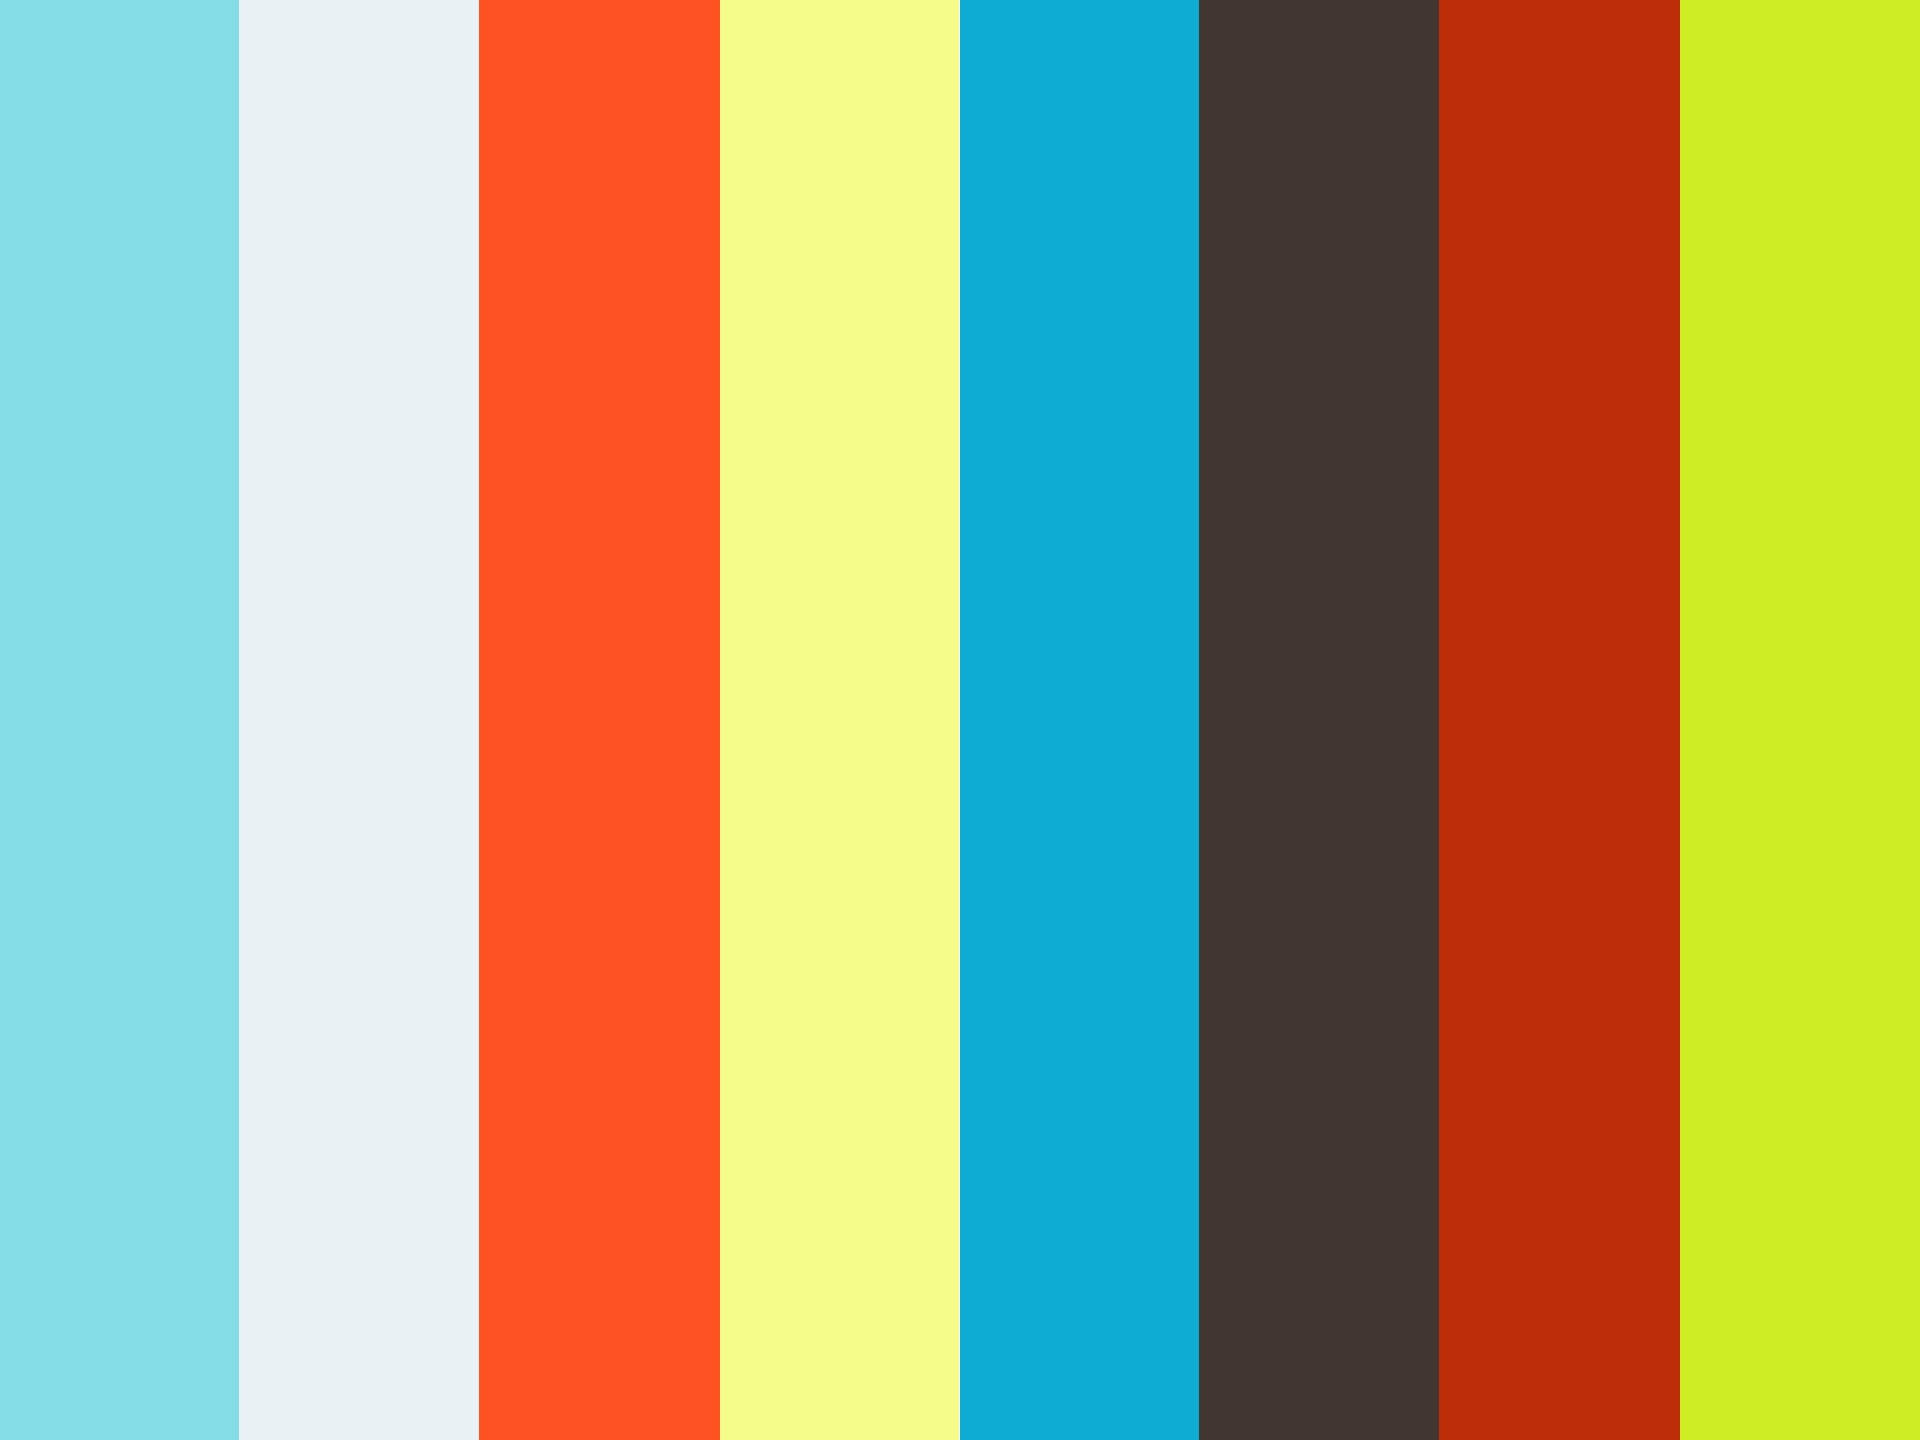 Video of Gav with his new shiny axe!